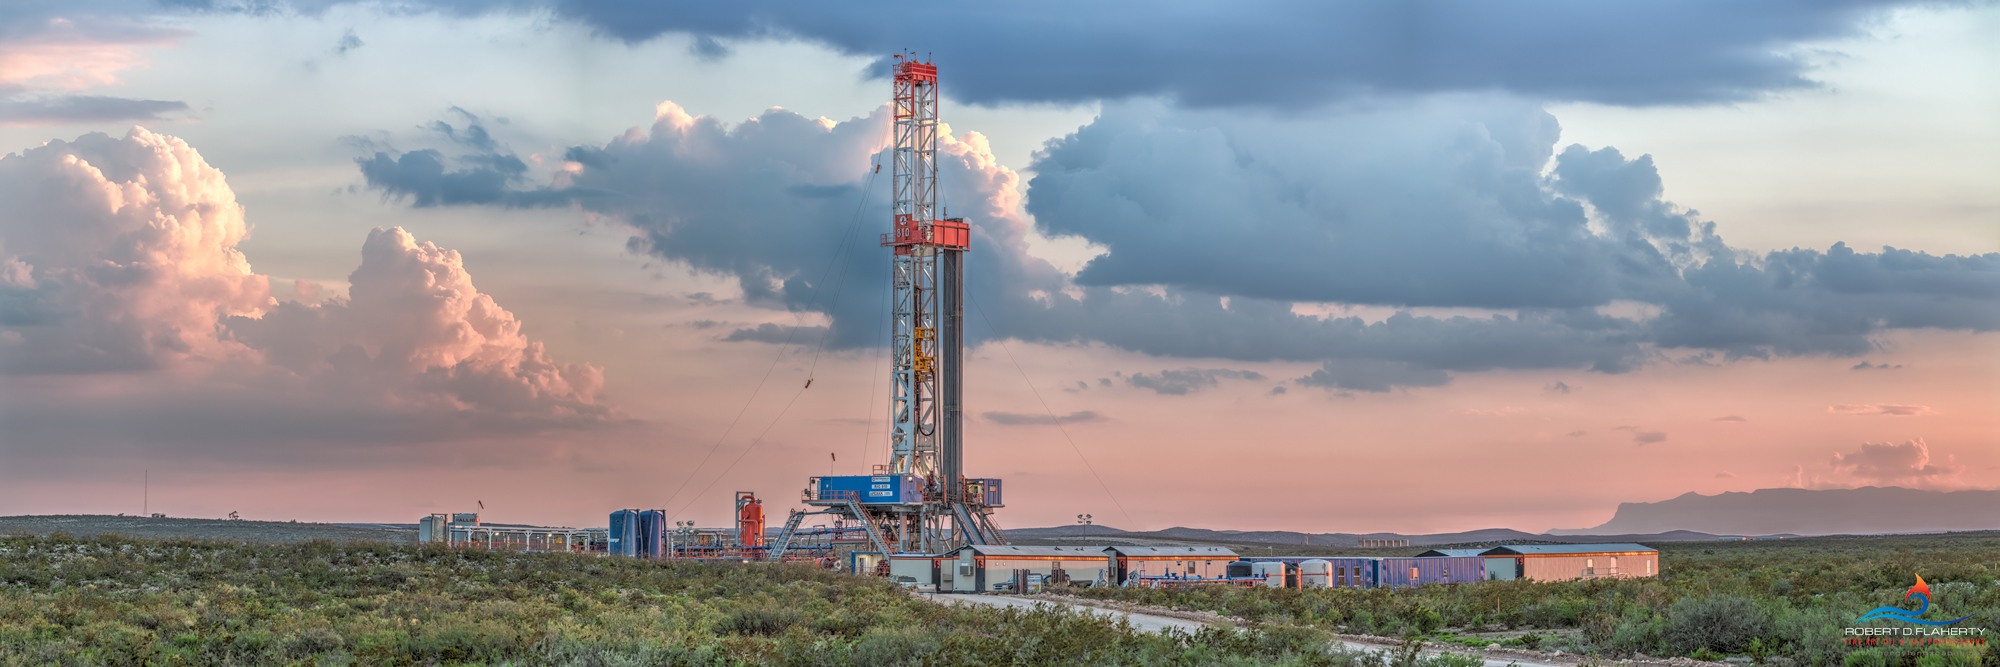 The Great Wide Open is a high resolution 3:1 panorama featuring Patterson rig 810 drilling a directional well above Guadalupe...